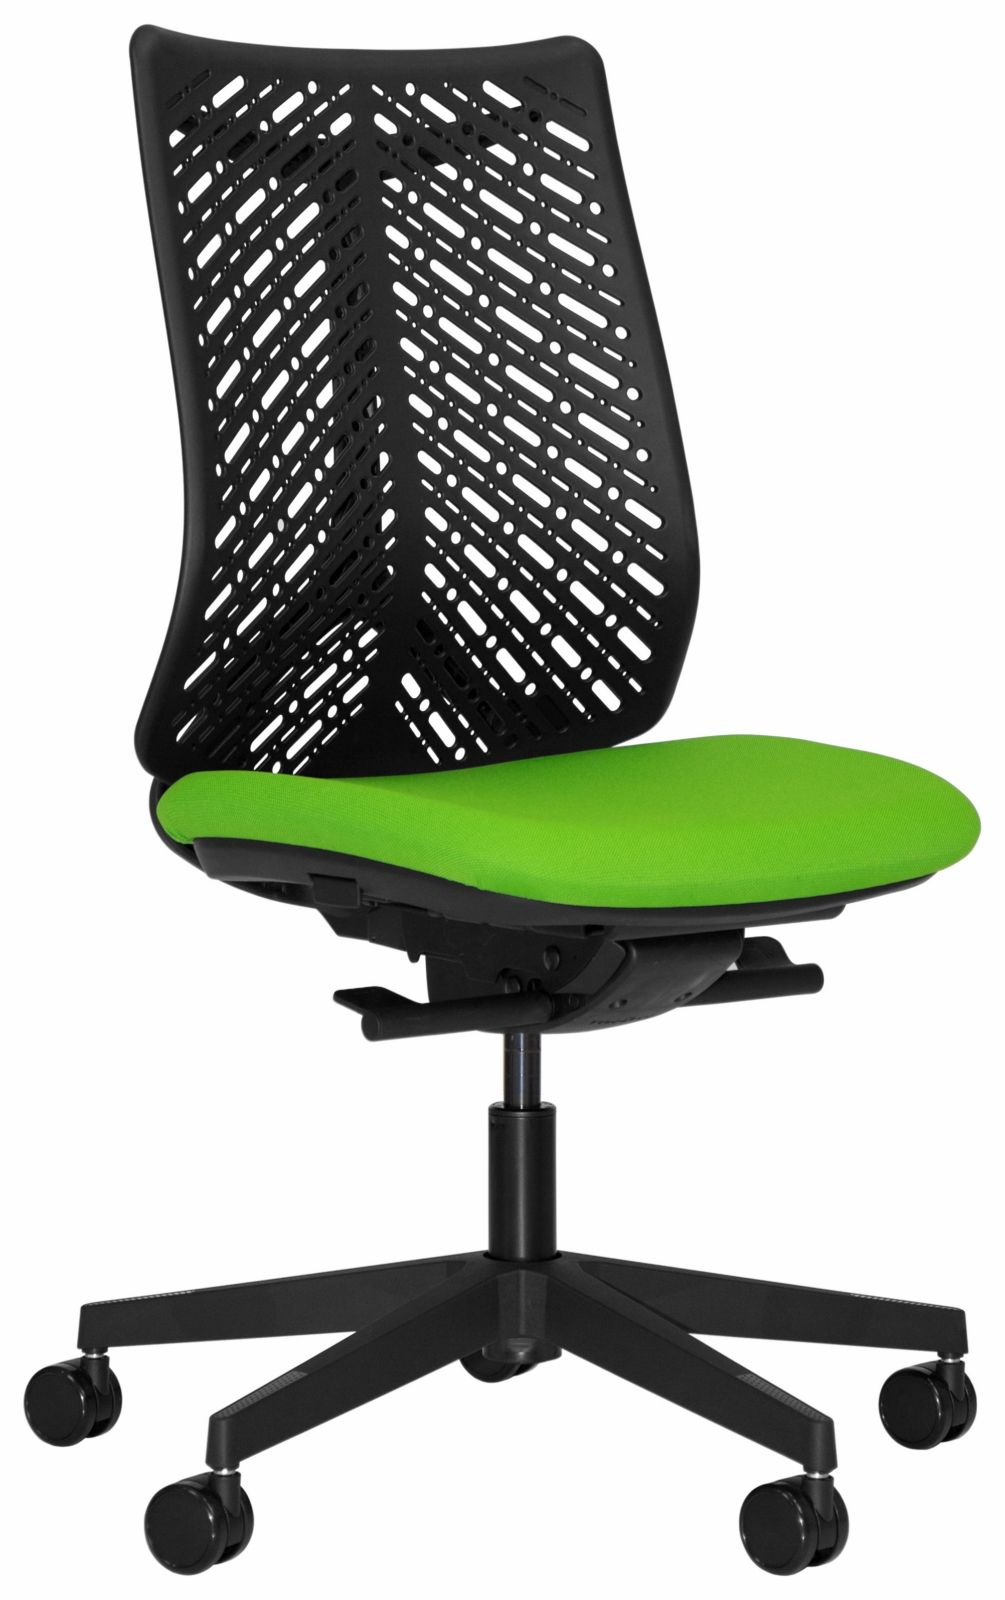 Airflex Task Chair Black Base Without Support Arms By Elite